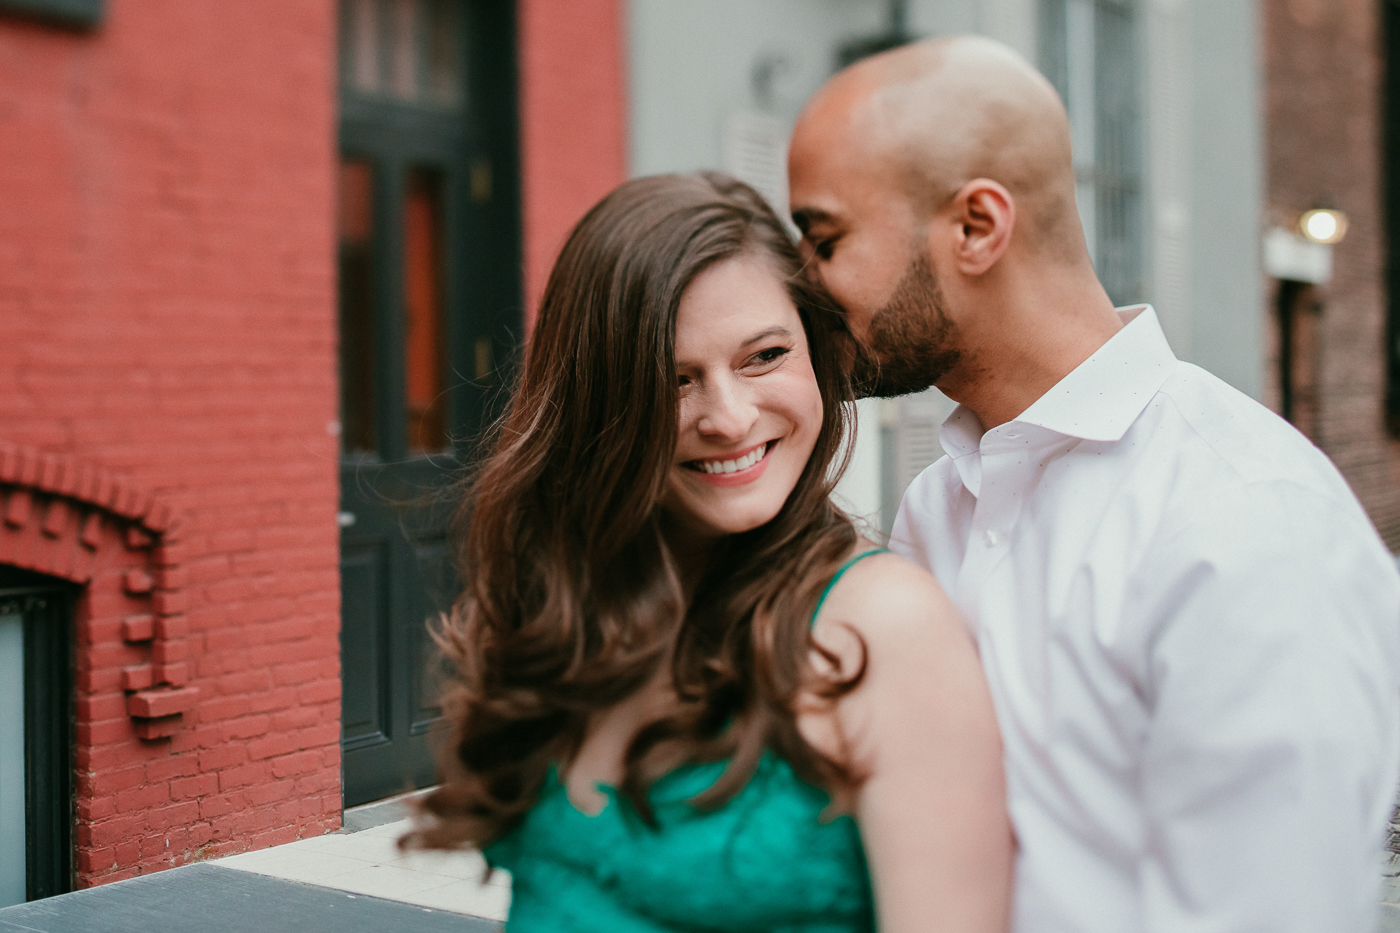 West-Village-Engagement-Photos-NYC-Wedding-Photographer-26.JPG